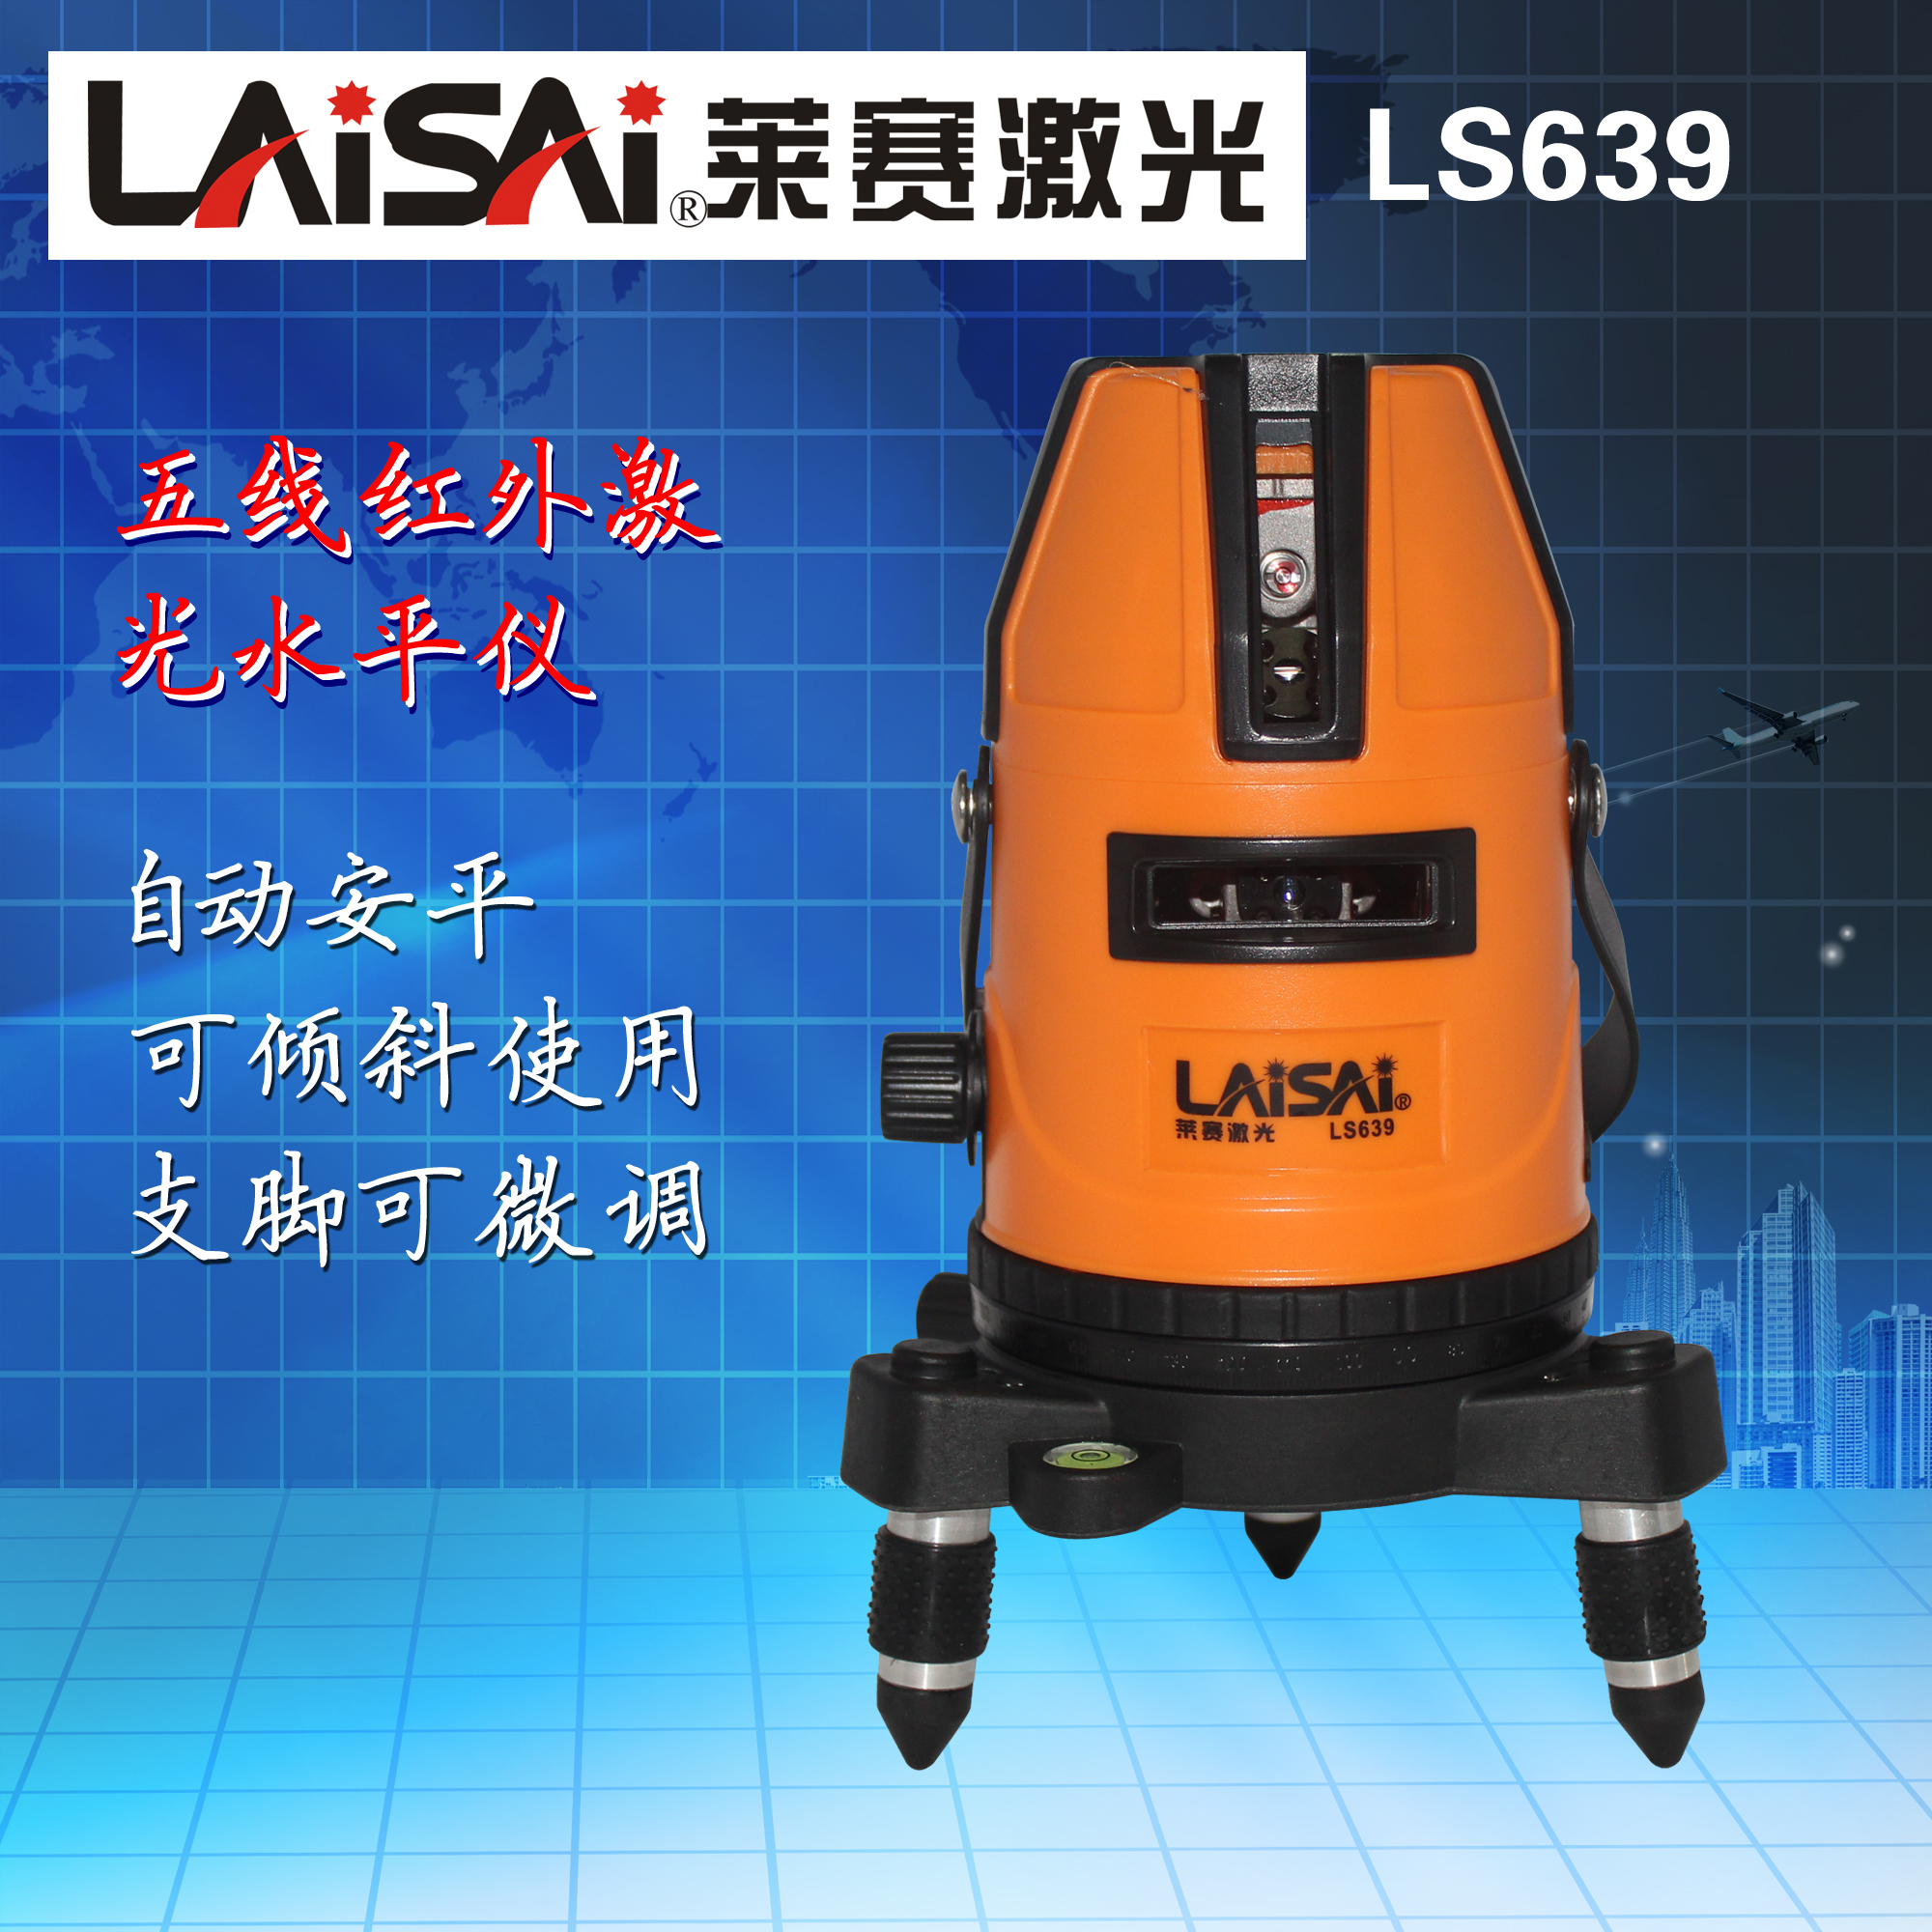 Laisai ls639 laser laser gradienter five ink line dotted line instrument line marking instrument infrared instrument laisai genuine